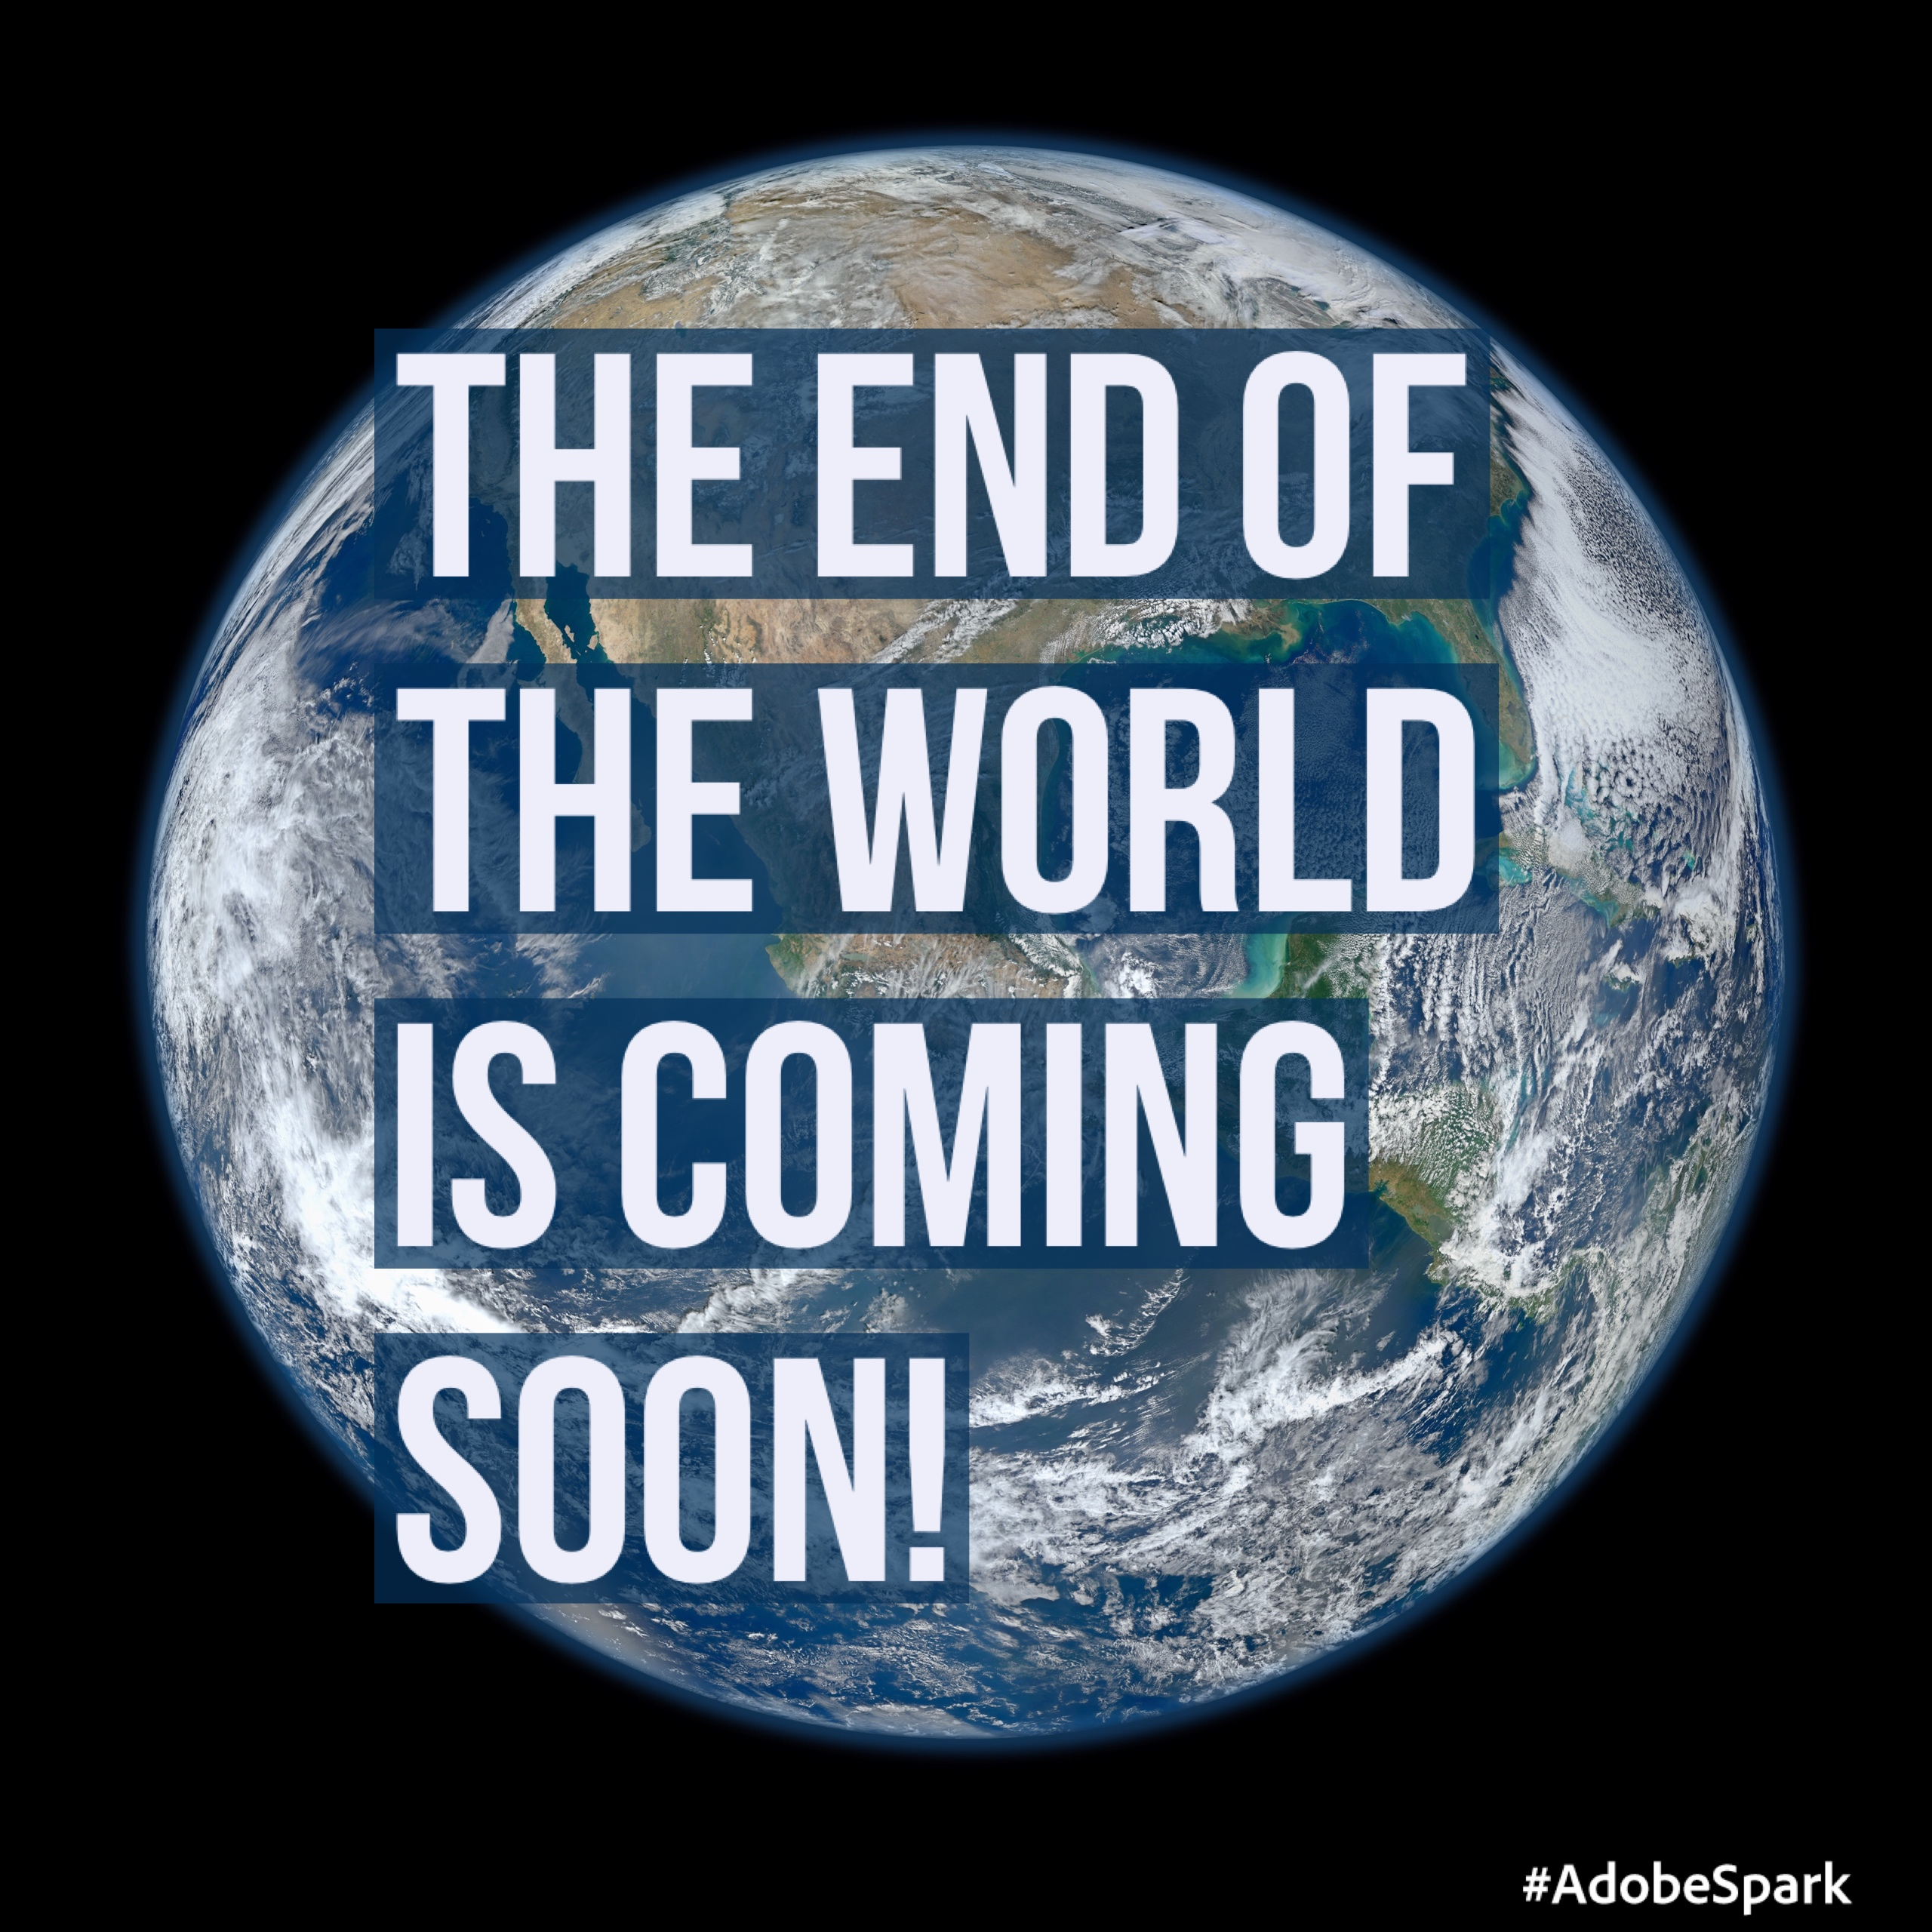 july 24th 16 the end of the world is coming soon daily radio bible